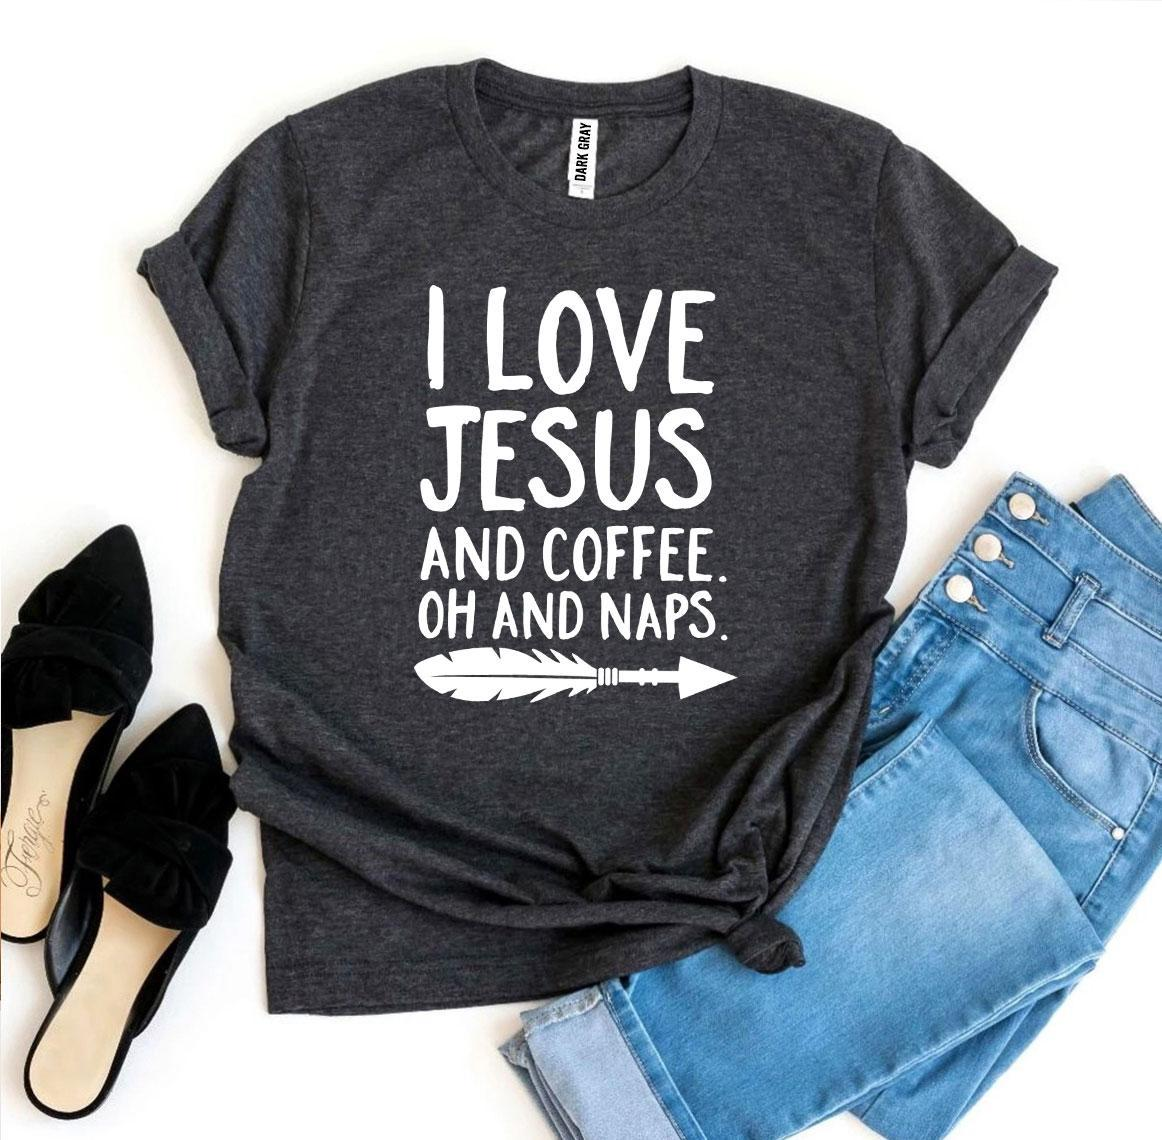 I Love Jesus And Coffee Oh And Naps T-shirt - Cream and Sugar Coffee House & Brewing Co.